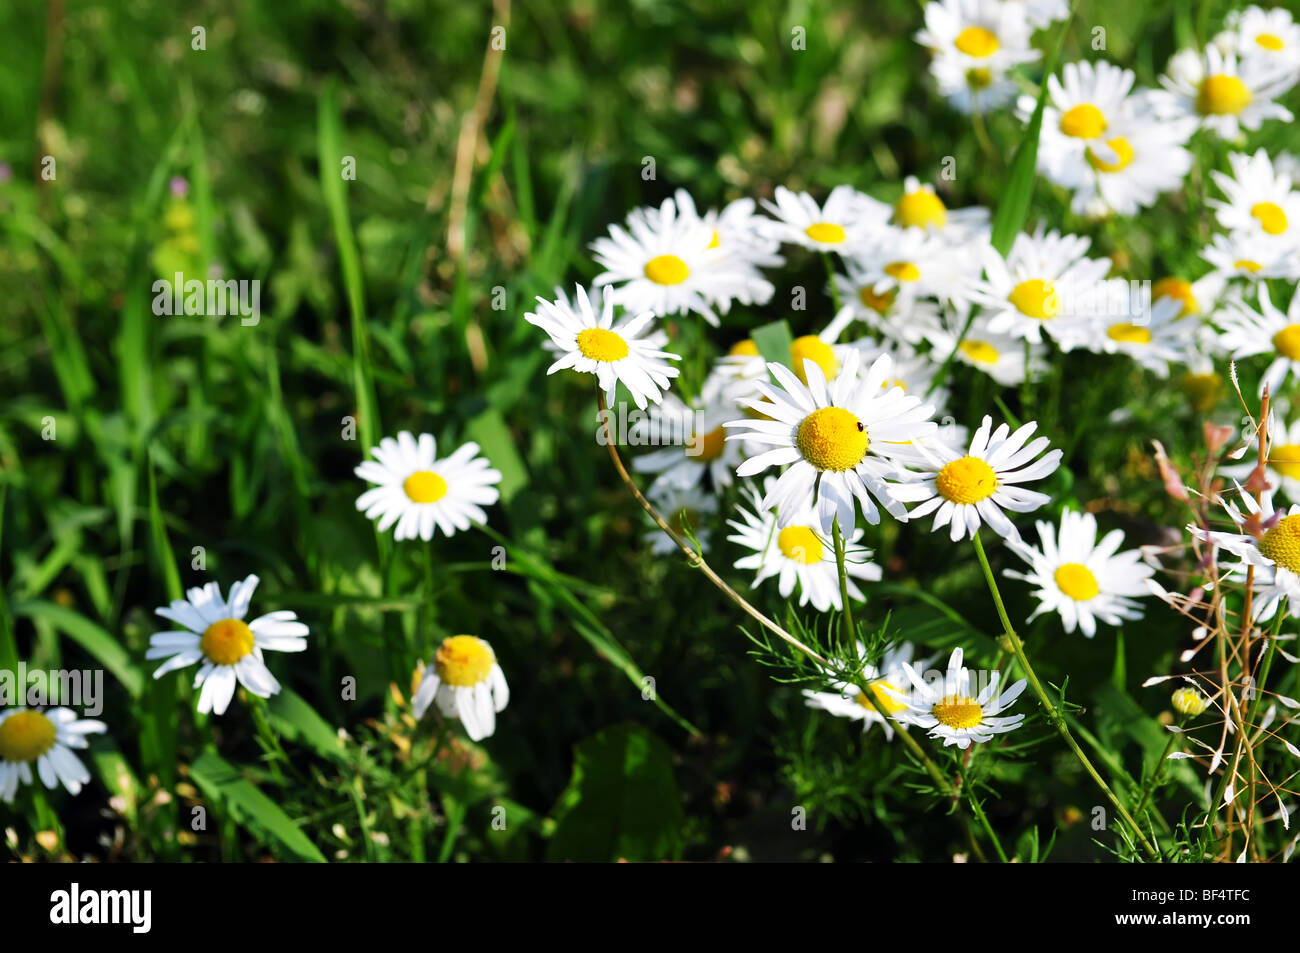 chamomile on natural background - shallow dof - Stock Image